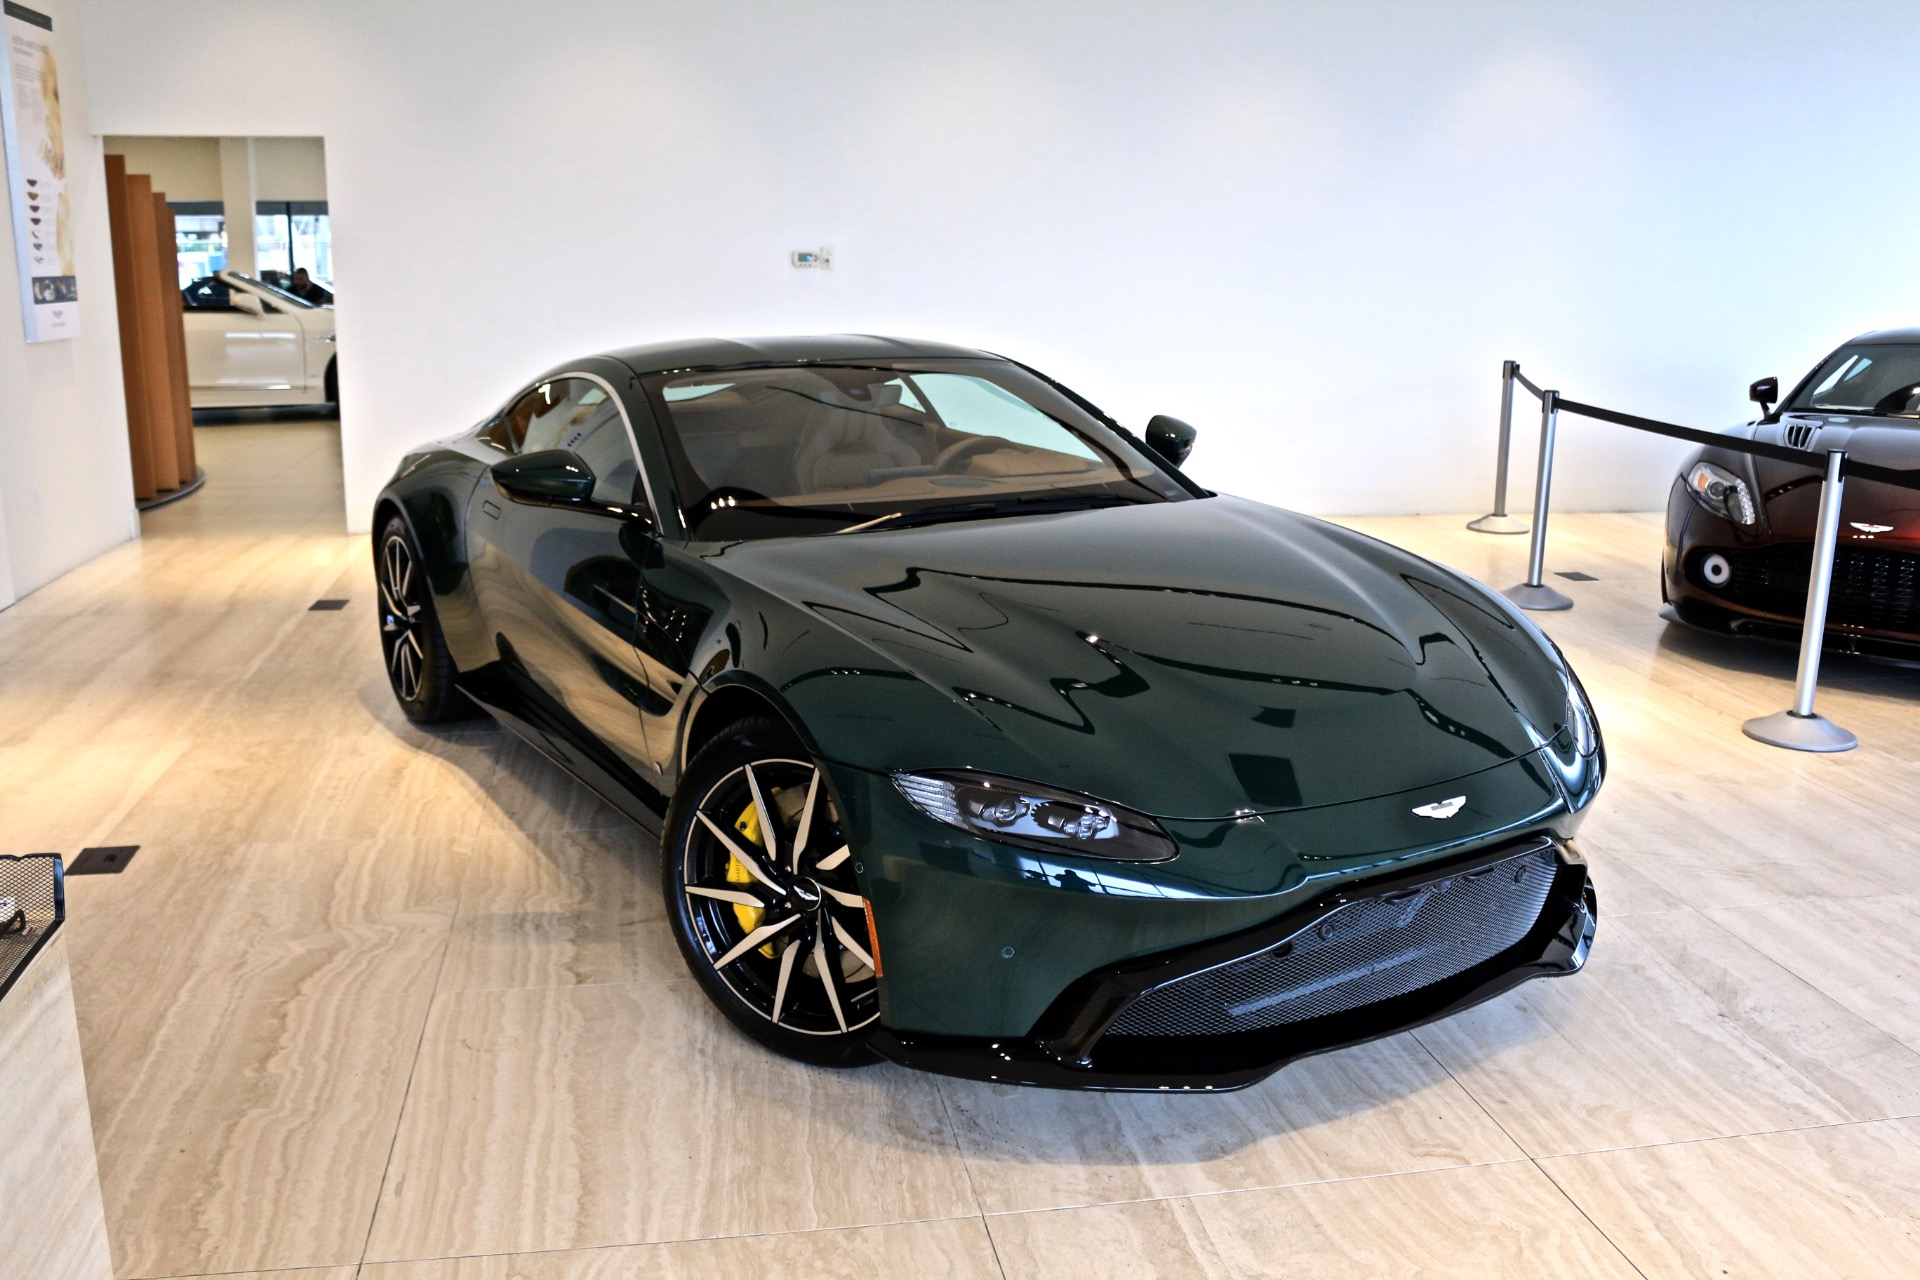 2019 Aston Martin Vantage Stock 9nn00807 For Sale Near Vienna Va